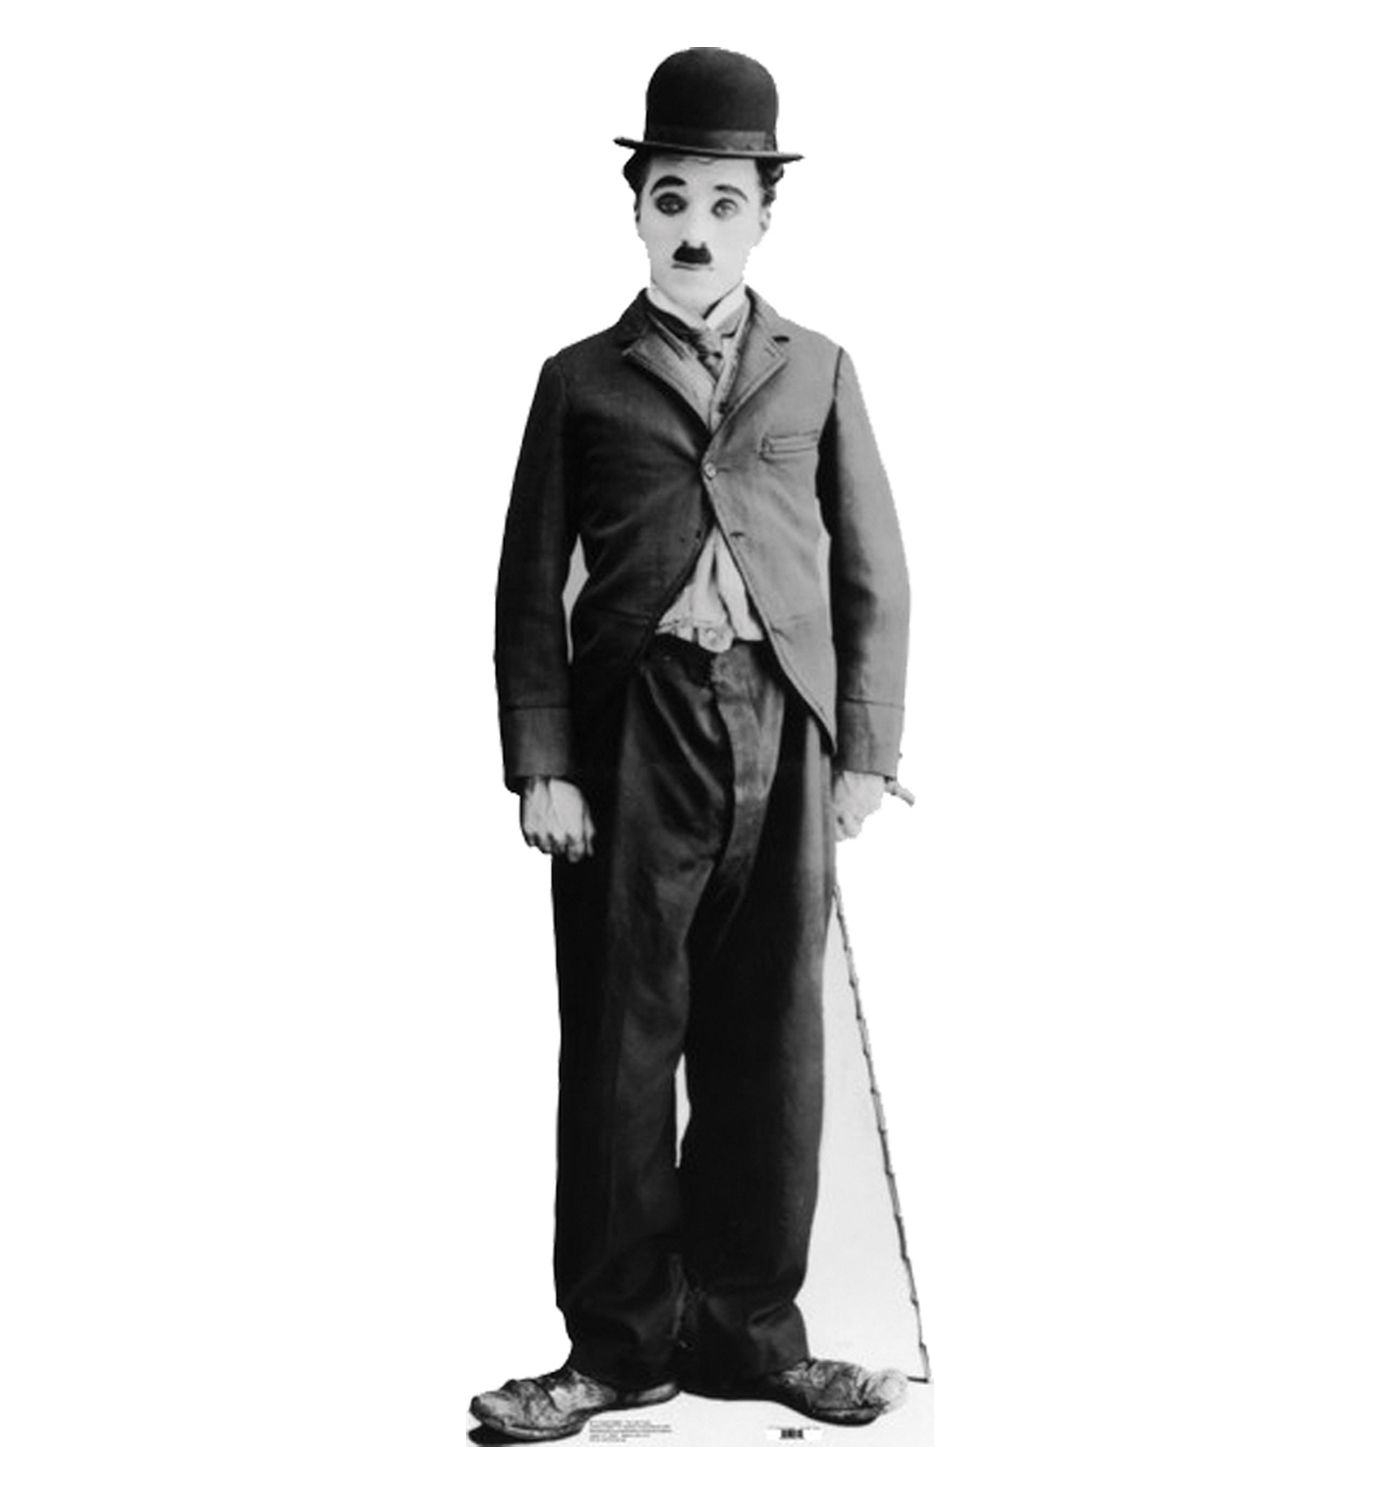 best images about charlie chaplin charles 17 best images about charlie chaplin charles spencer pictures of celebrities and jon stewart